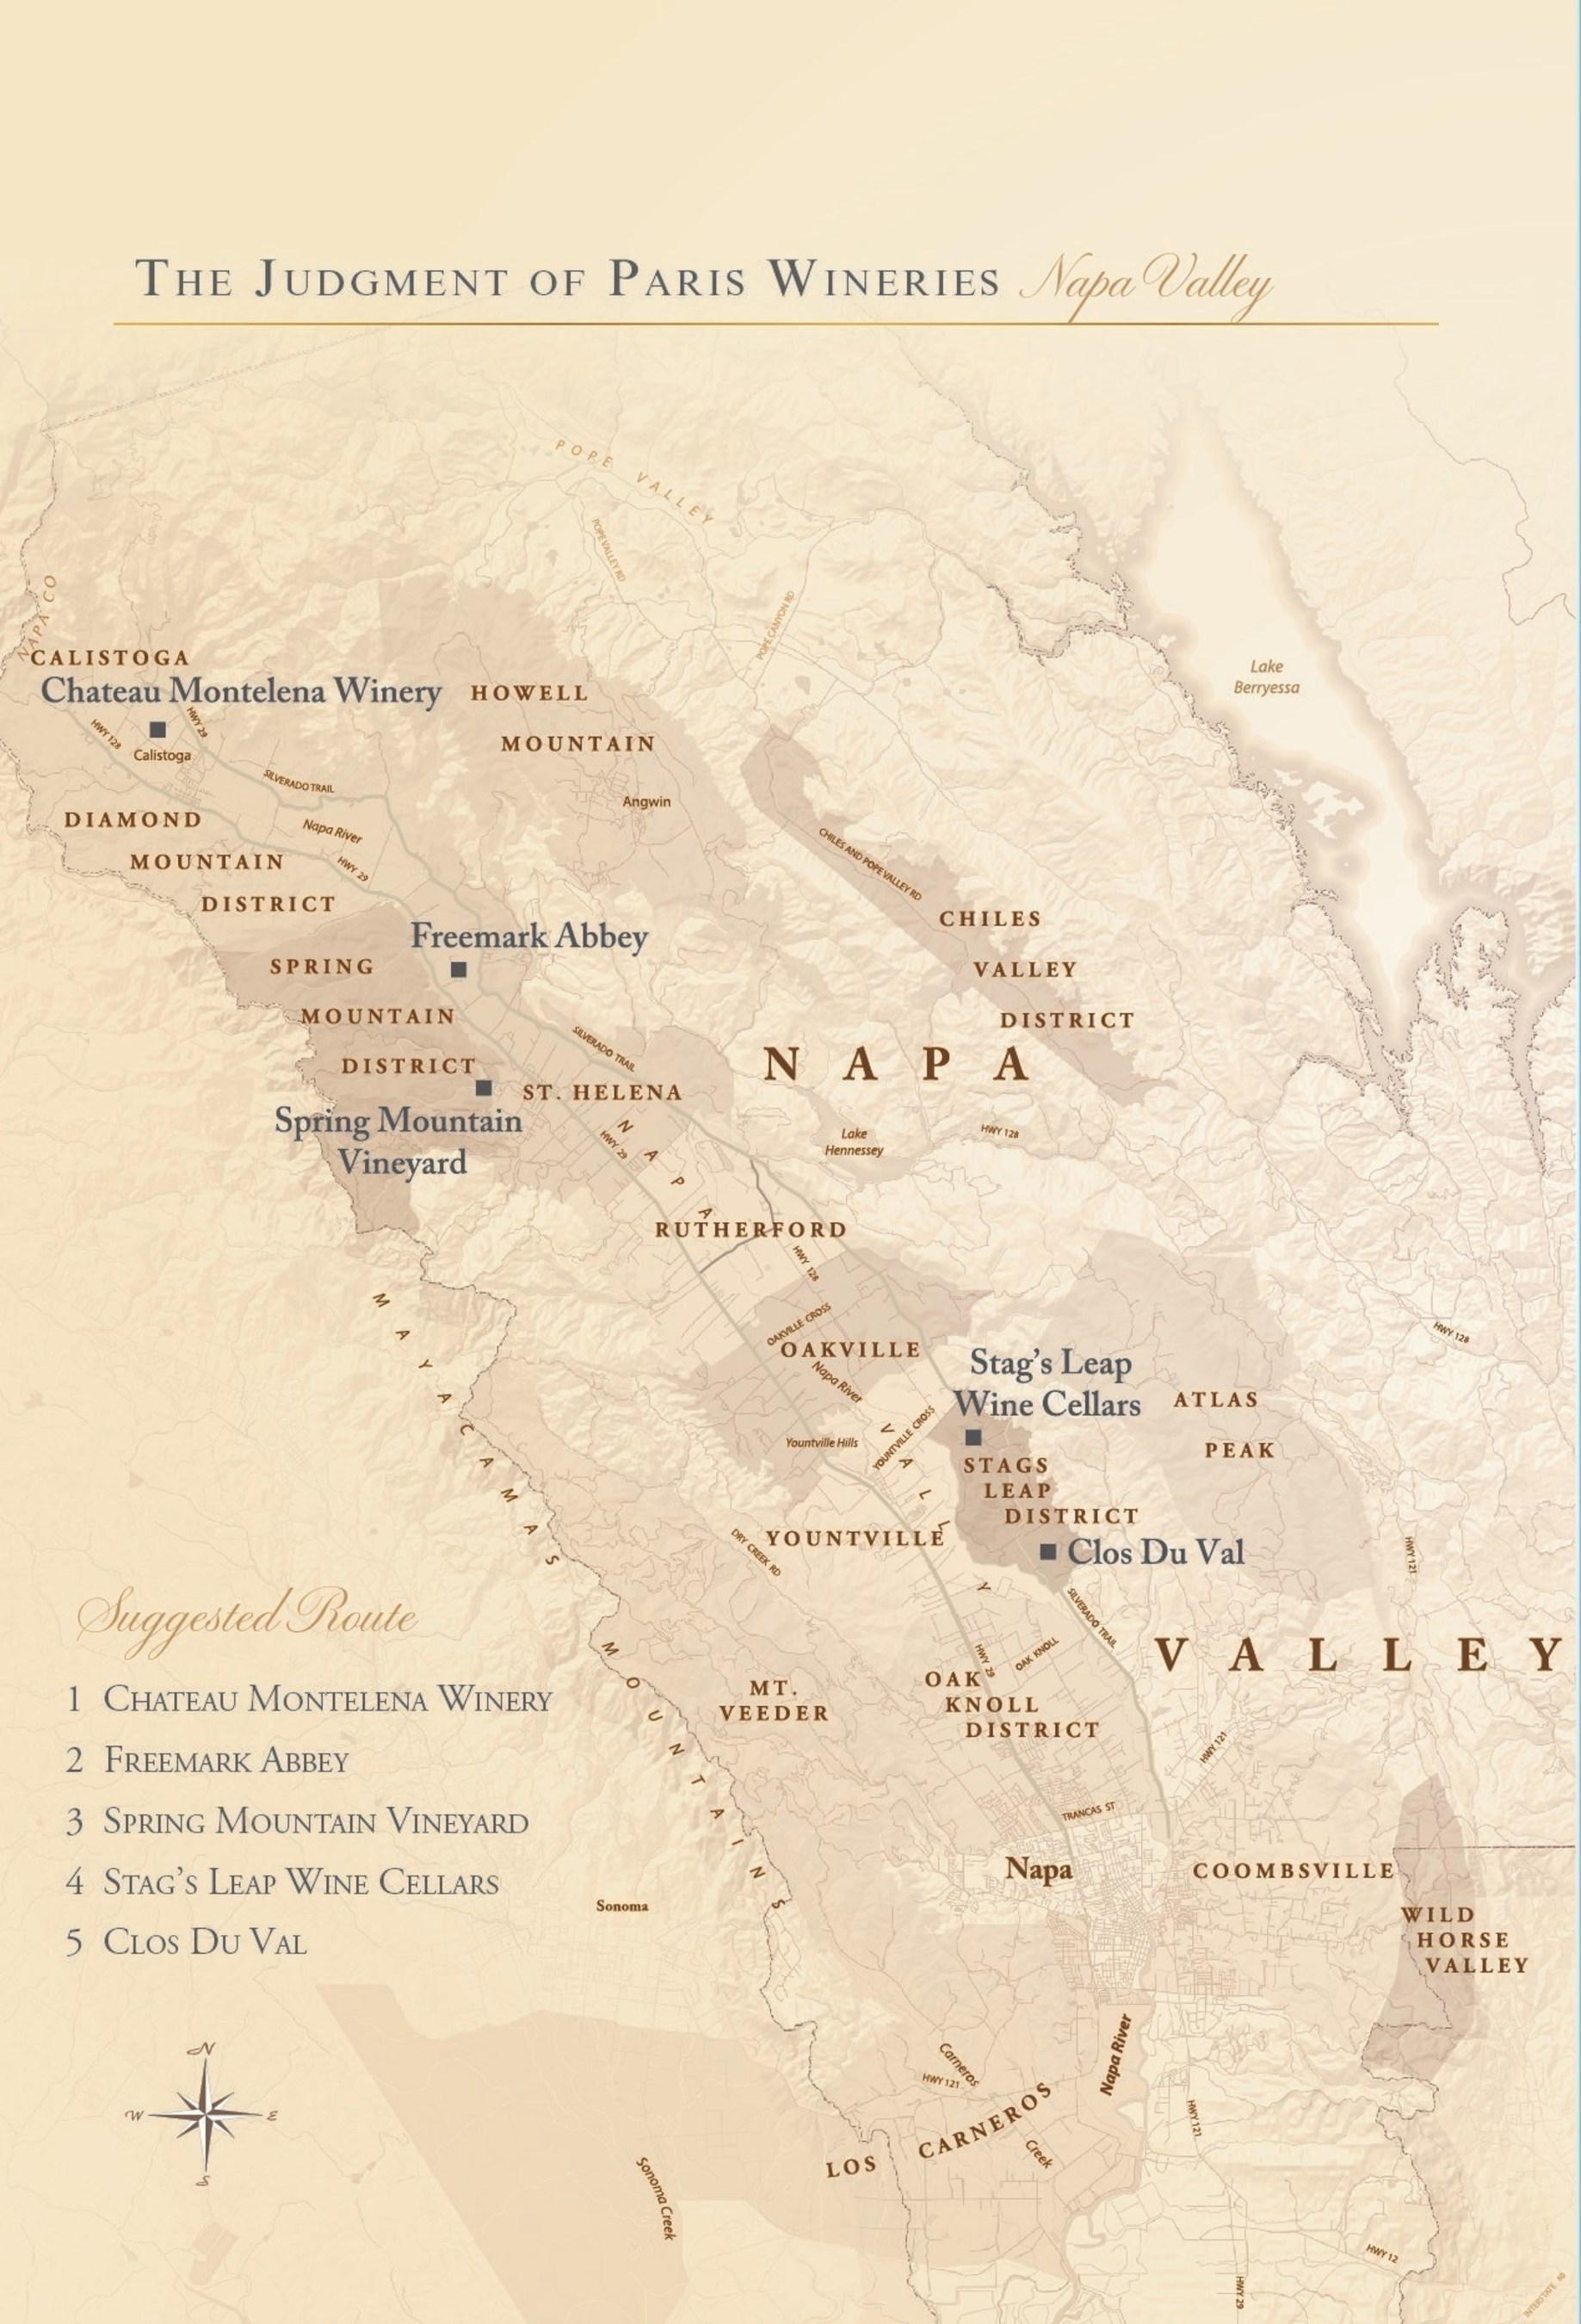 Five Napa Valley Judgment of Paris Participants Offer Joint Tasting Passport